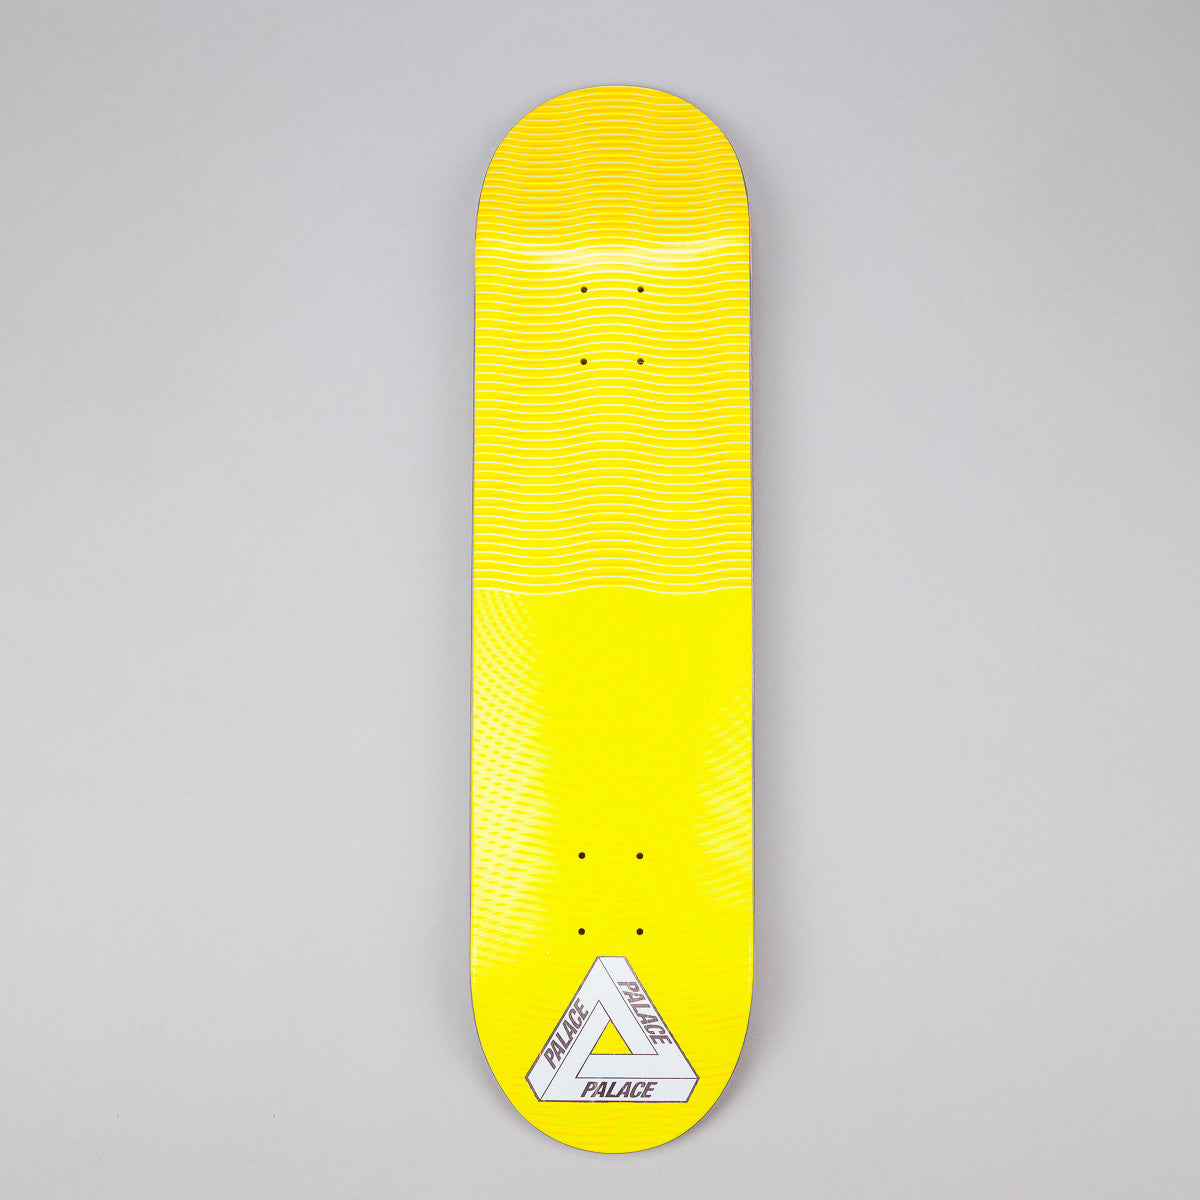 Palace Trippy Stick Two Deck - 8.1""